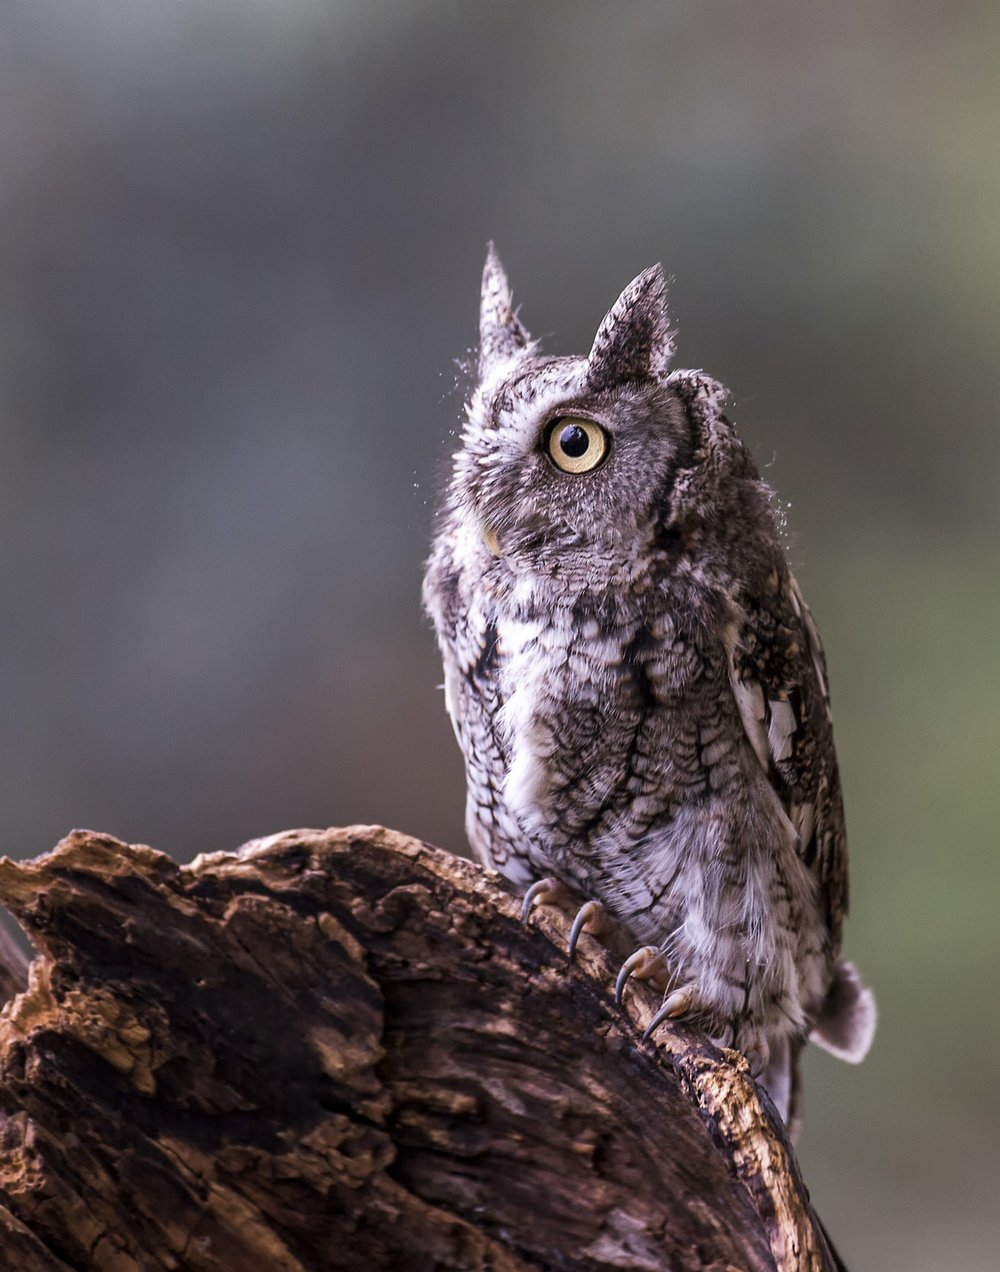 Screech Owl - The Screech Owl is another small owl, timing is key to see one. I know of many trees these guys reside in, lets hope for a sunny day as thats the best time to see them.